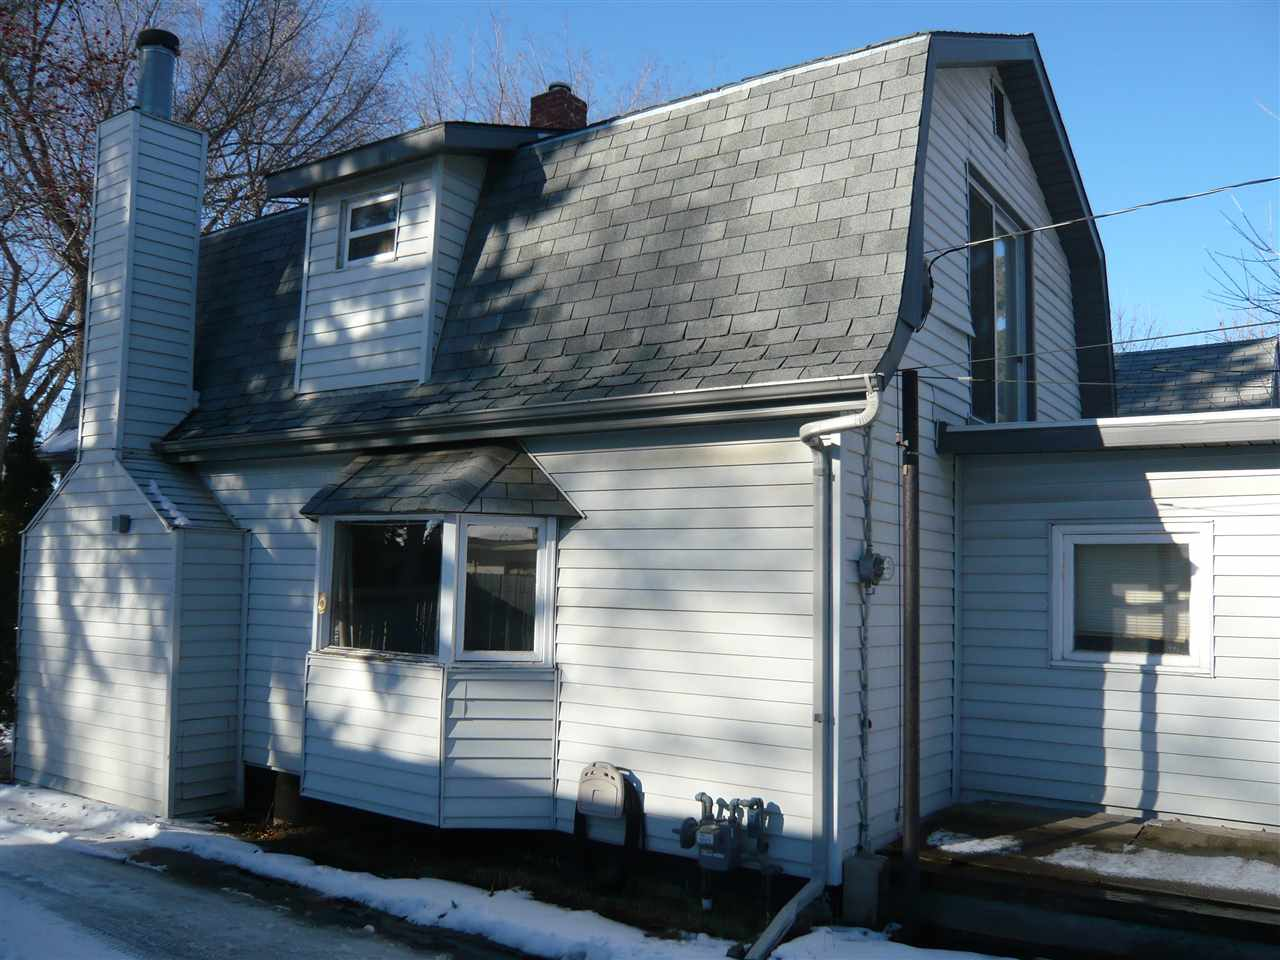 OPPORTUNITY KNOCKS! Sellers' plans have changed. Demolition done. Either continue renovations, or start over on a great infill lot. Lot is 46' wide. Lovely street. Close to schools, parks, proximity to downtown and all Highlands has to offer.